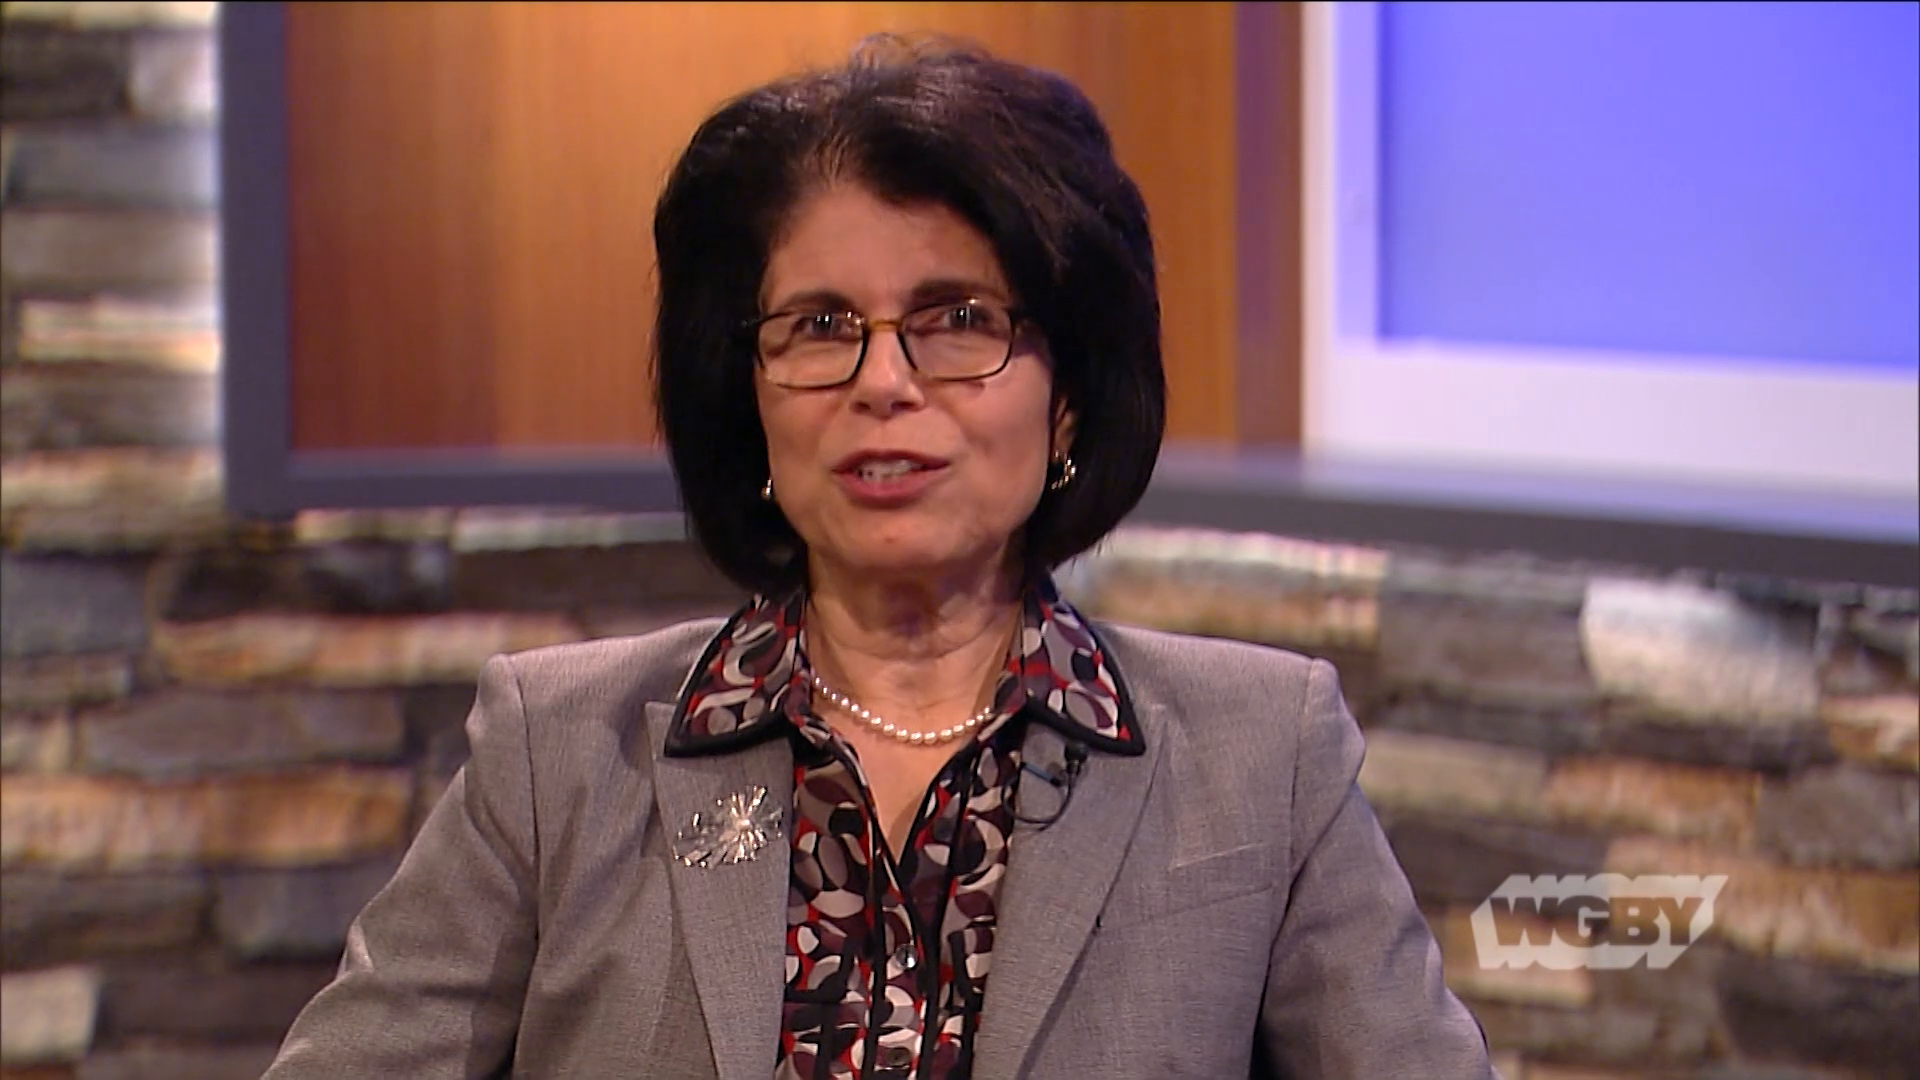 Baystate Health Breast Network Chair Dr. Grace Makari-Judson marks Breast Cancer Awareness Month with a discussion about risk factors and treatment options.